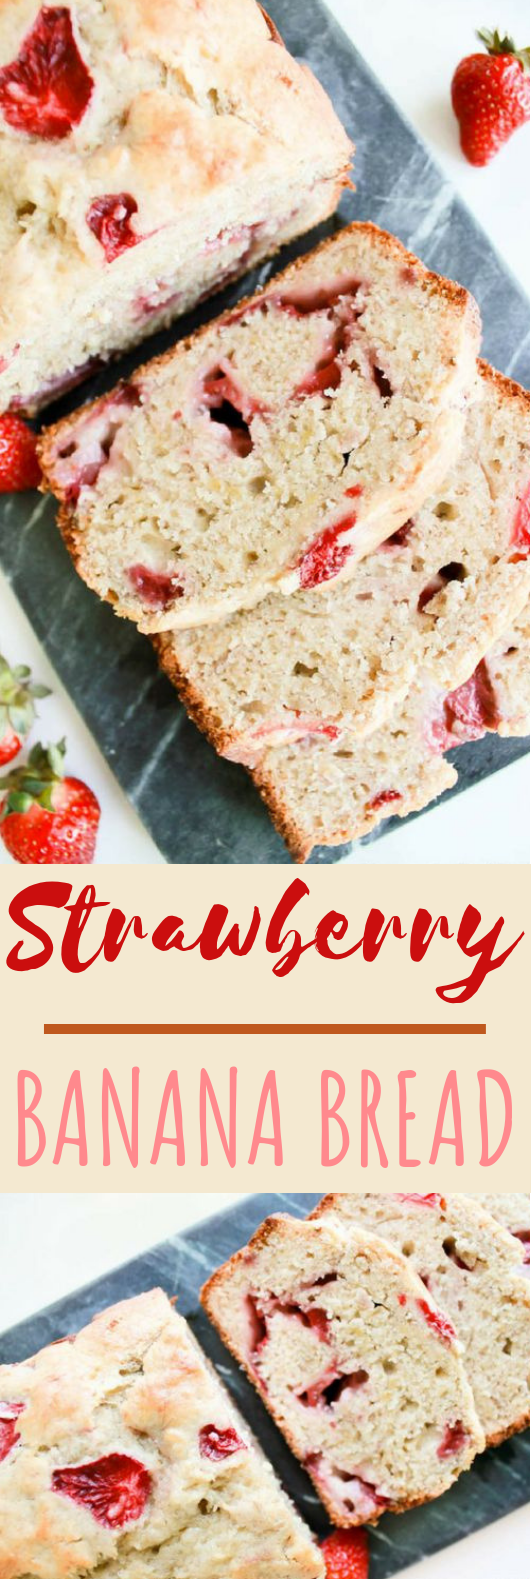 Strawberry Banana Bread #cake #recipes